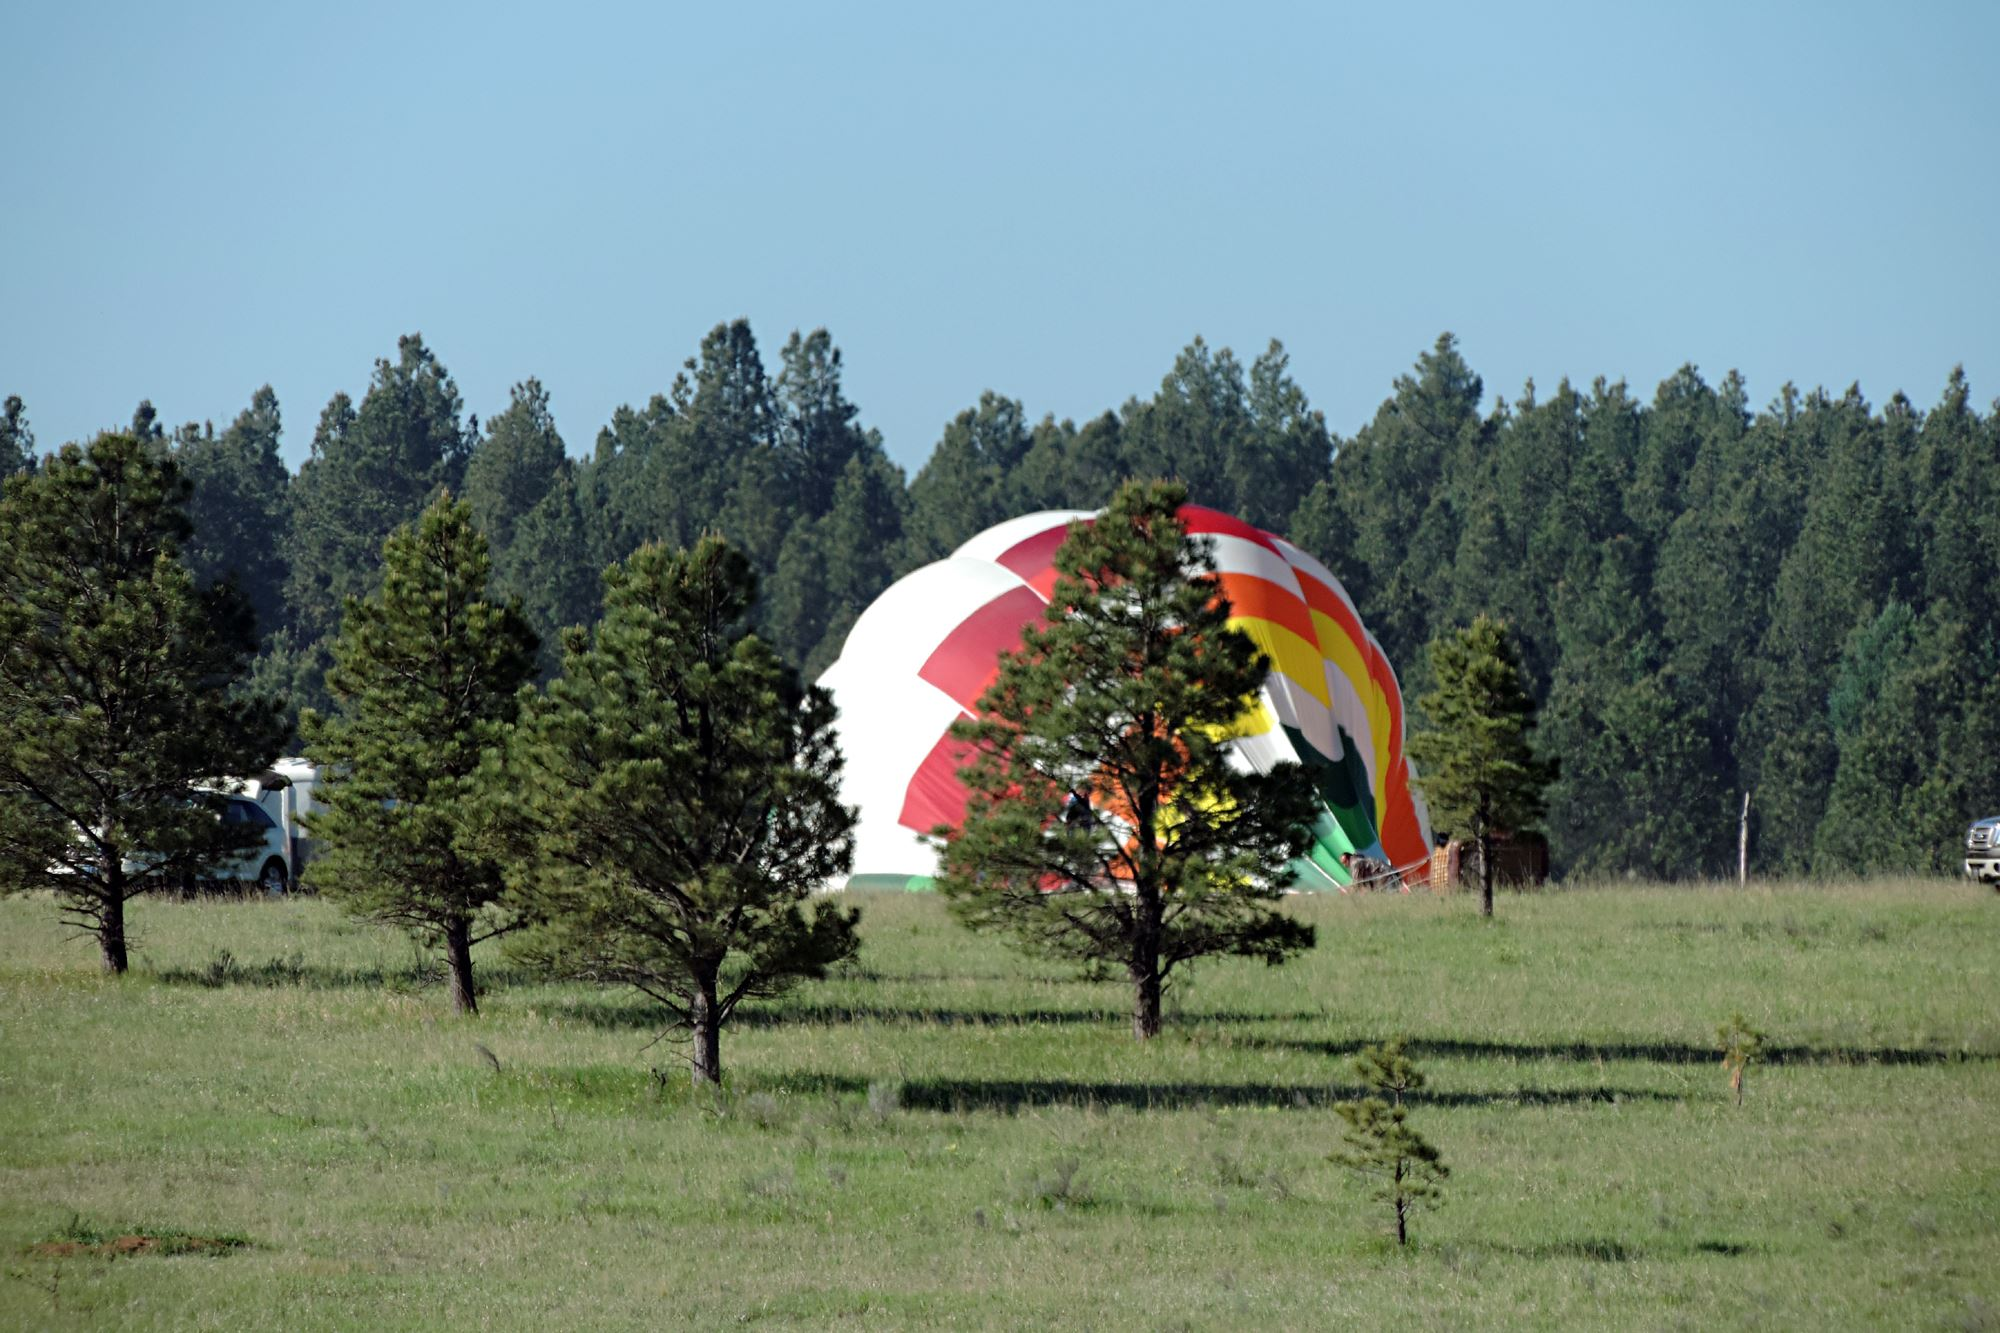 Hot Air Balloon Being Filled Between Trees